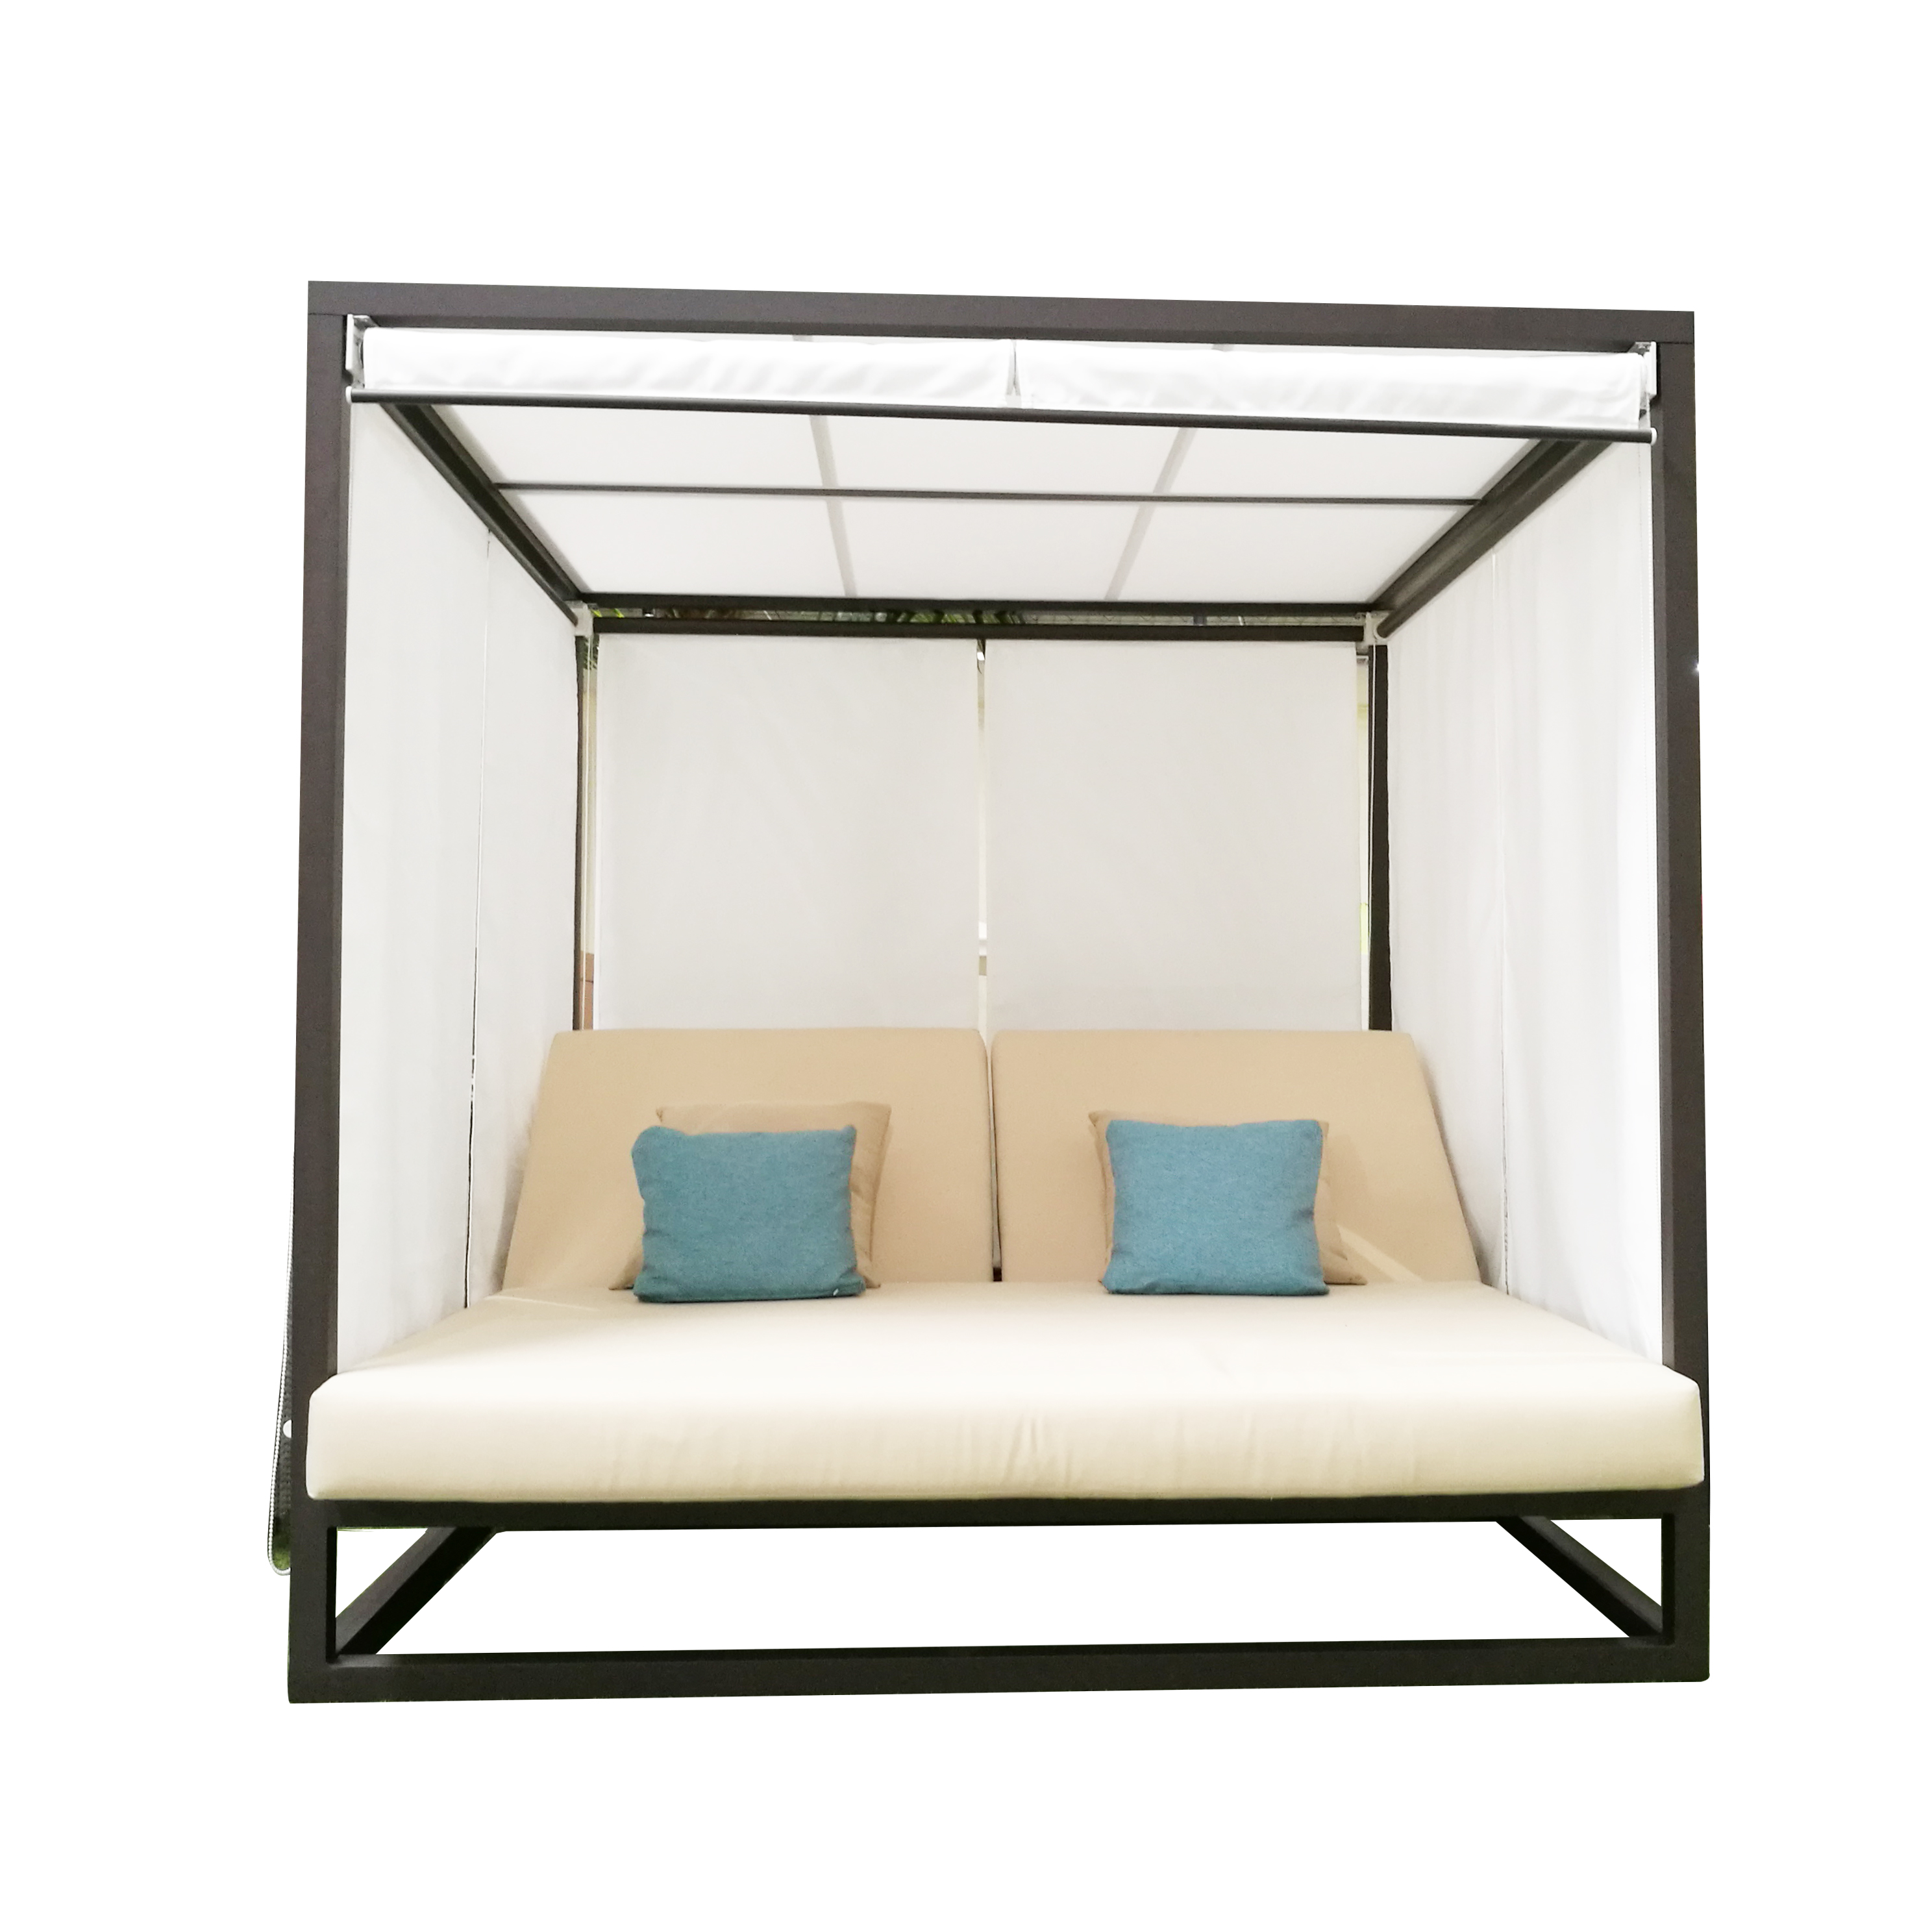 - White Aluminum Outdoor Patio Furniture Canopy Bed For Hotel - Buy